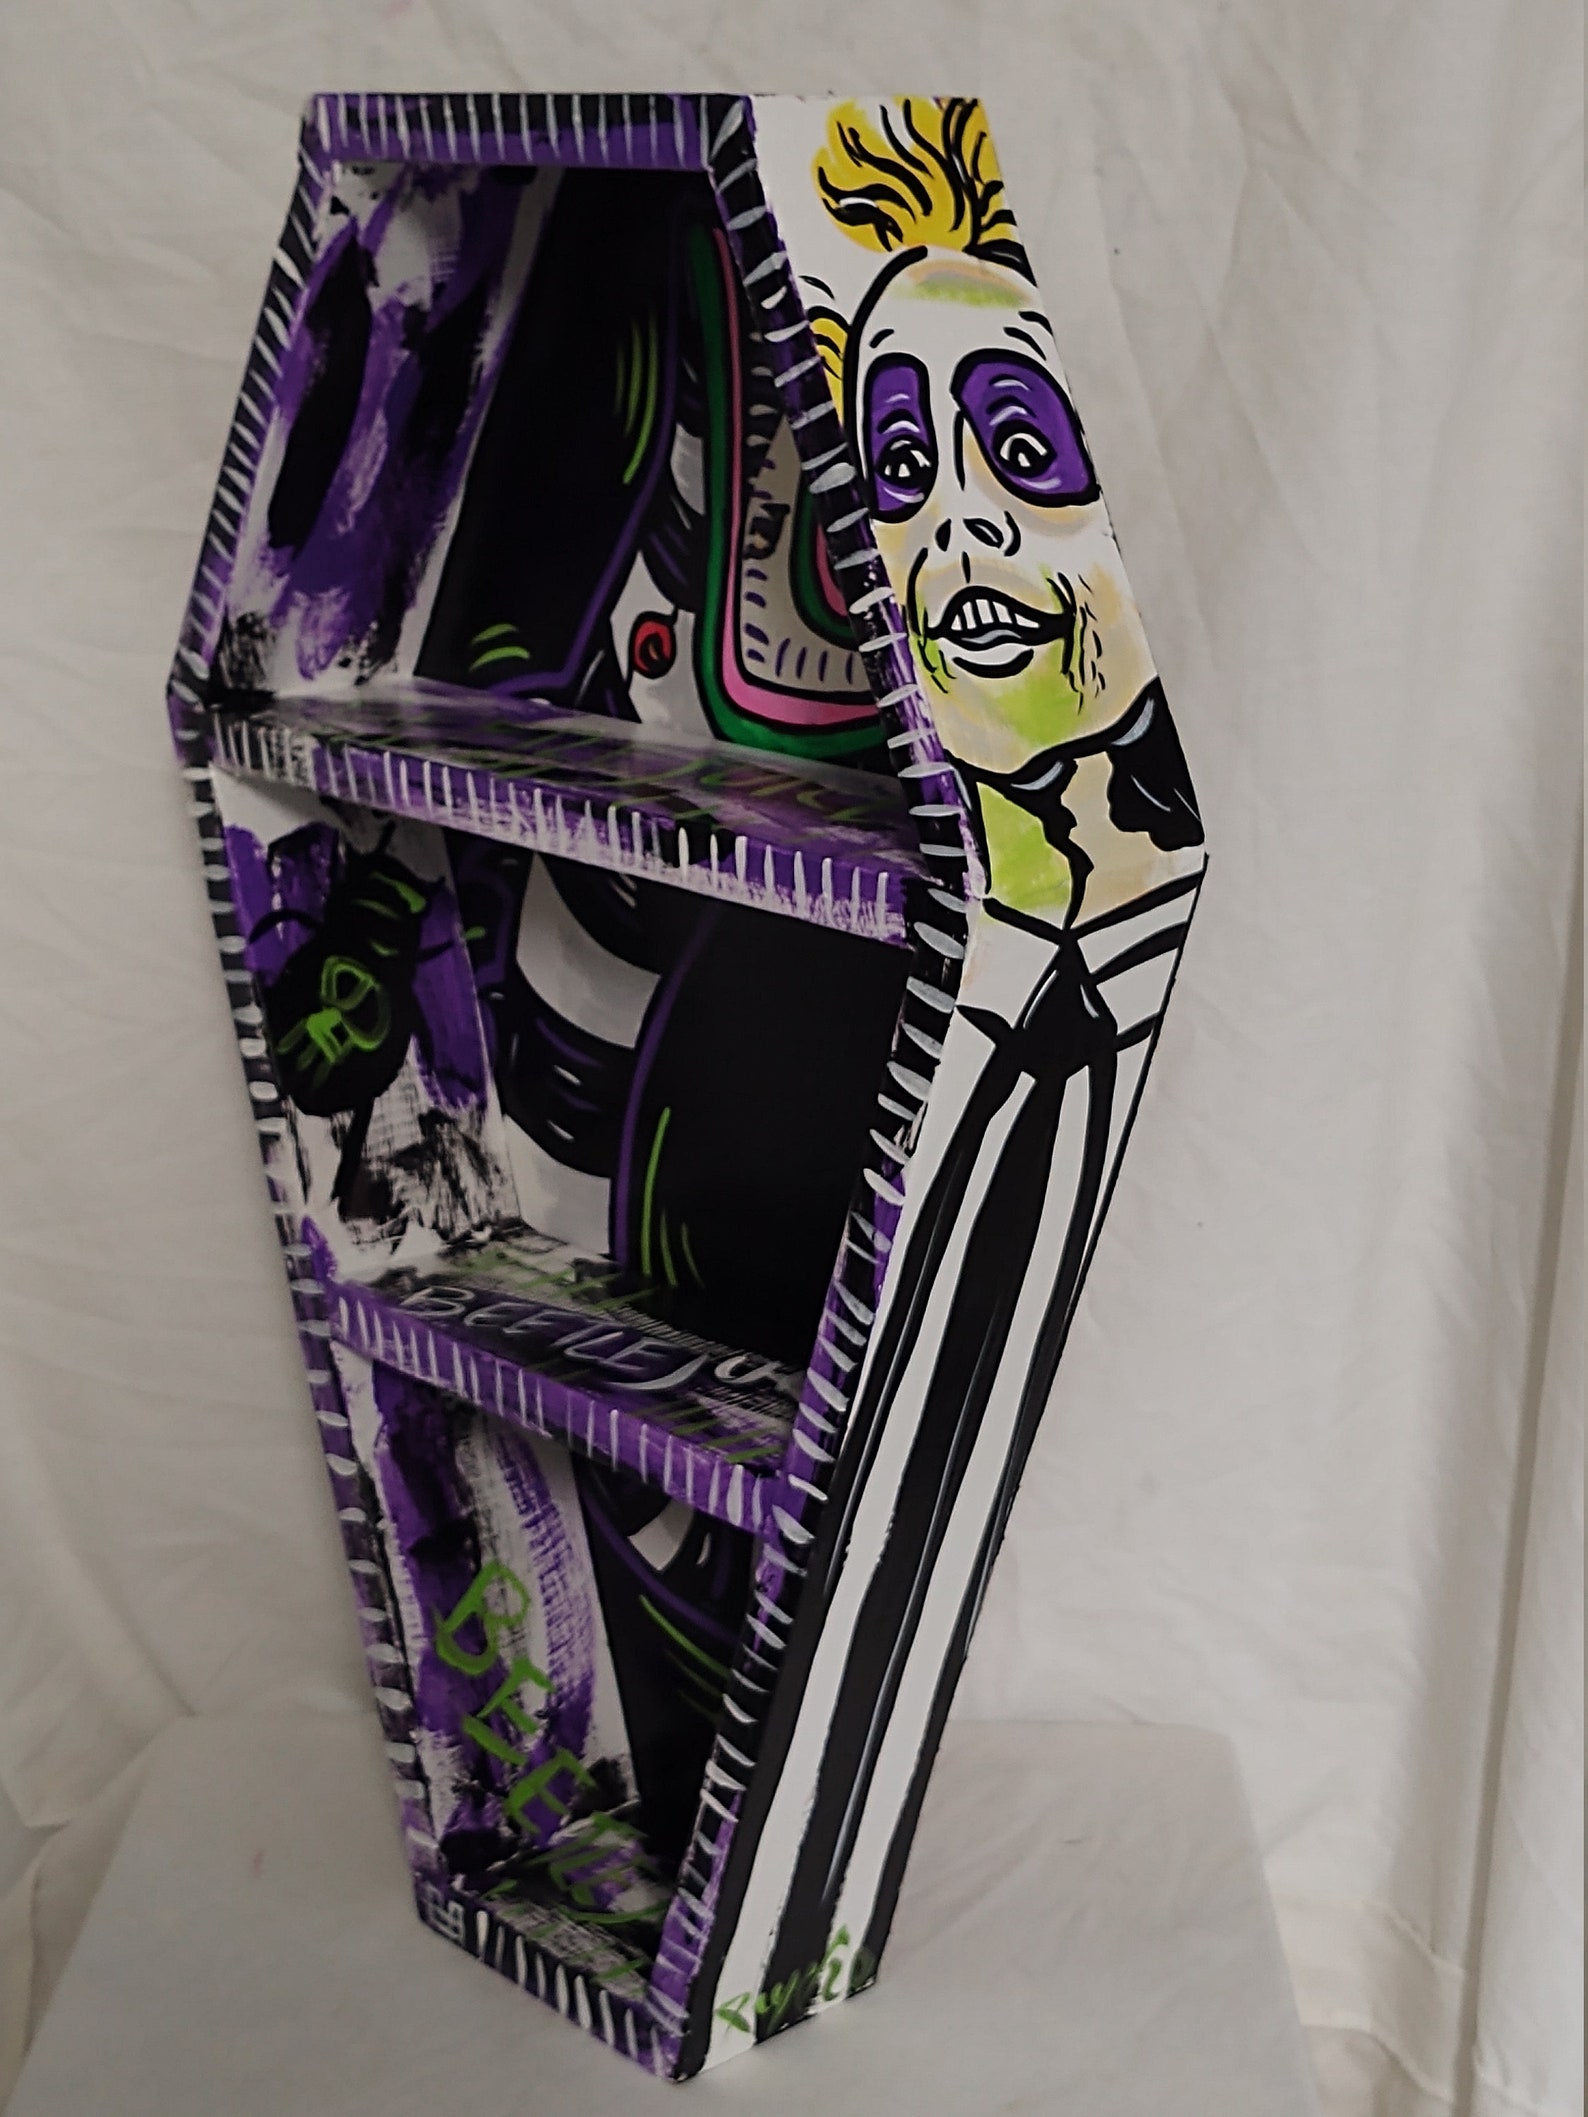 Beetlejuice Coffin Tabletop and Wall Shelves by Blackened Art Design